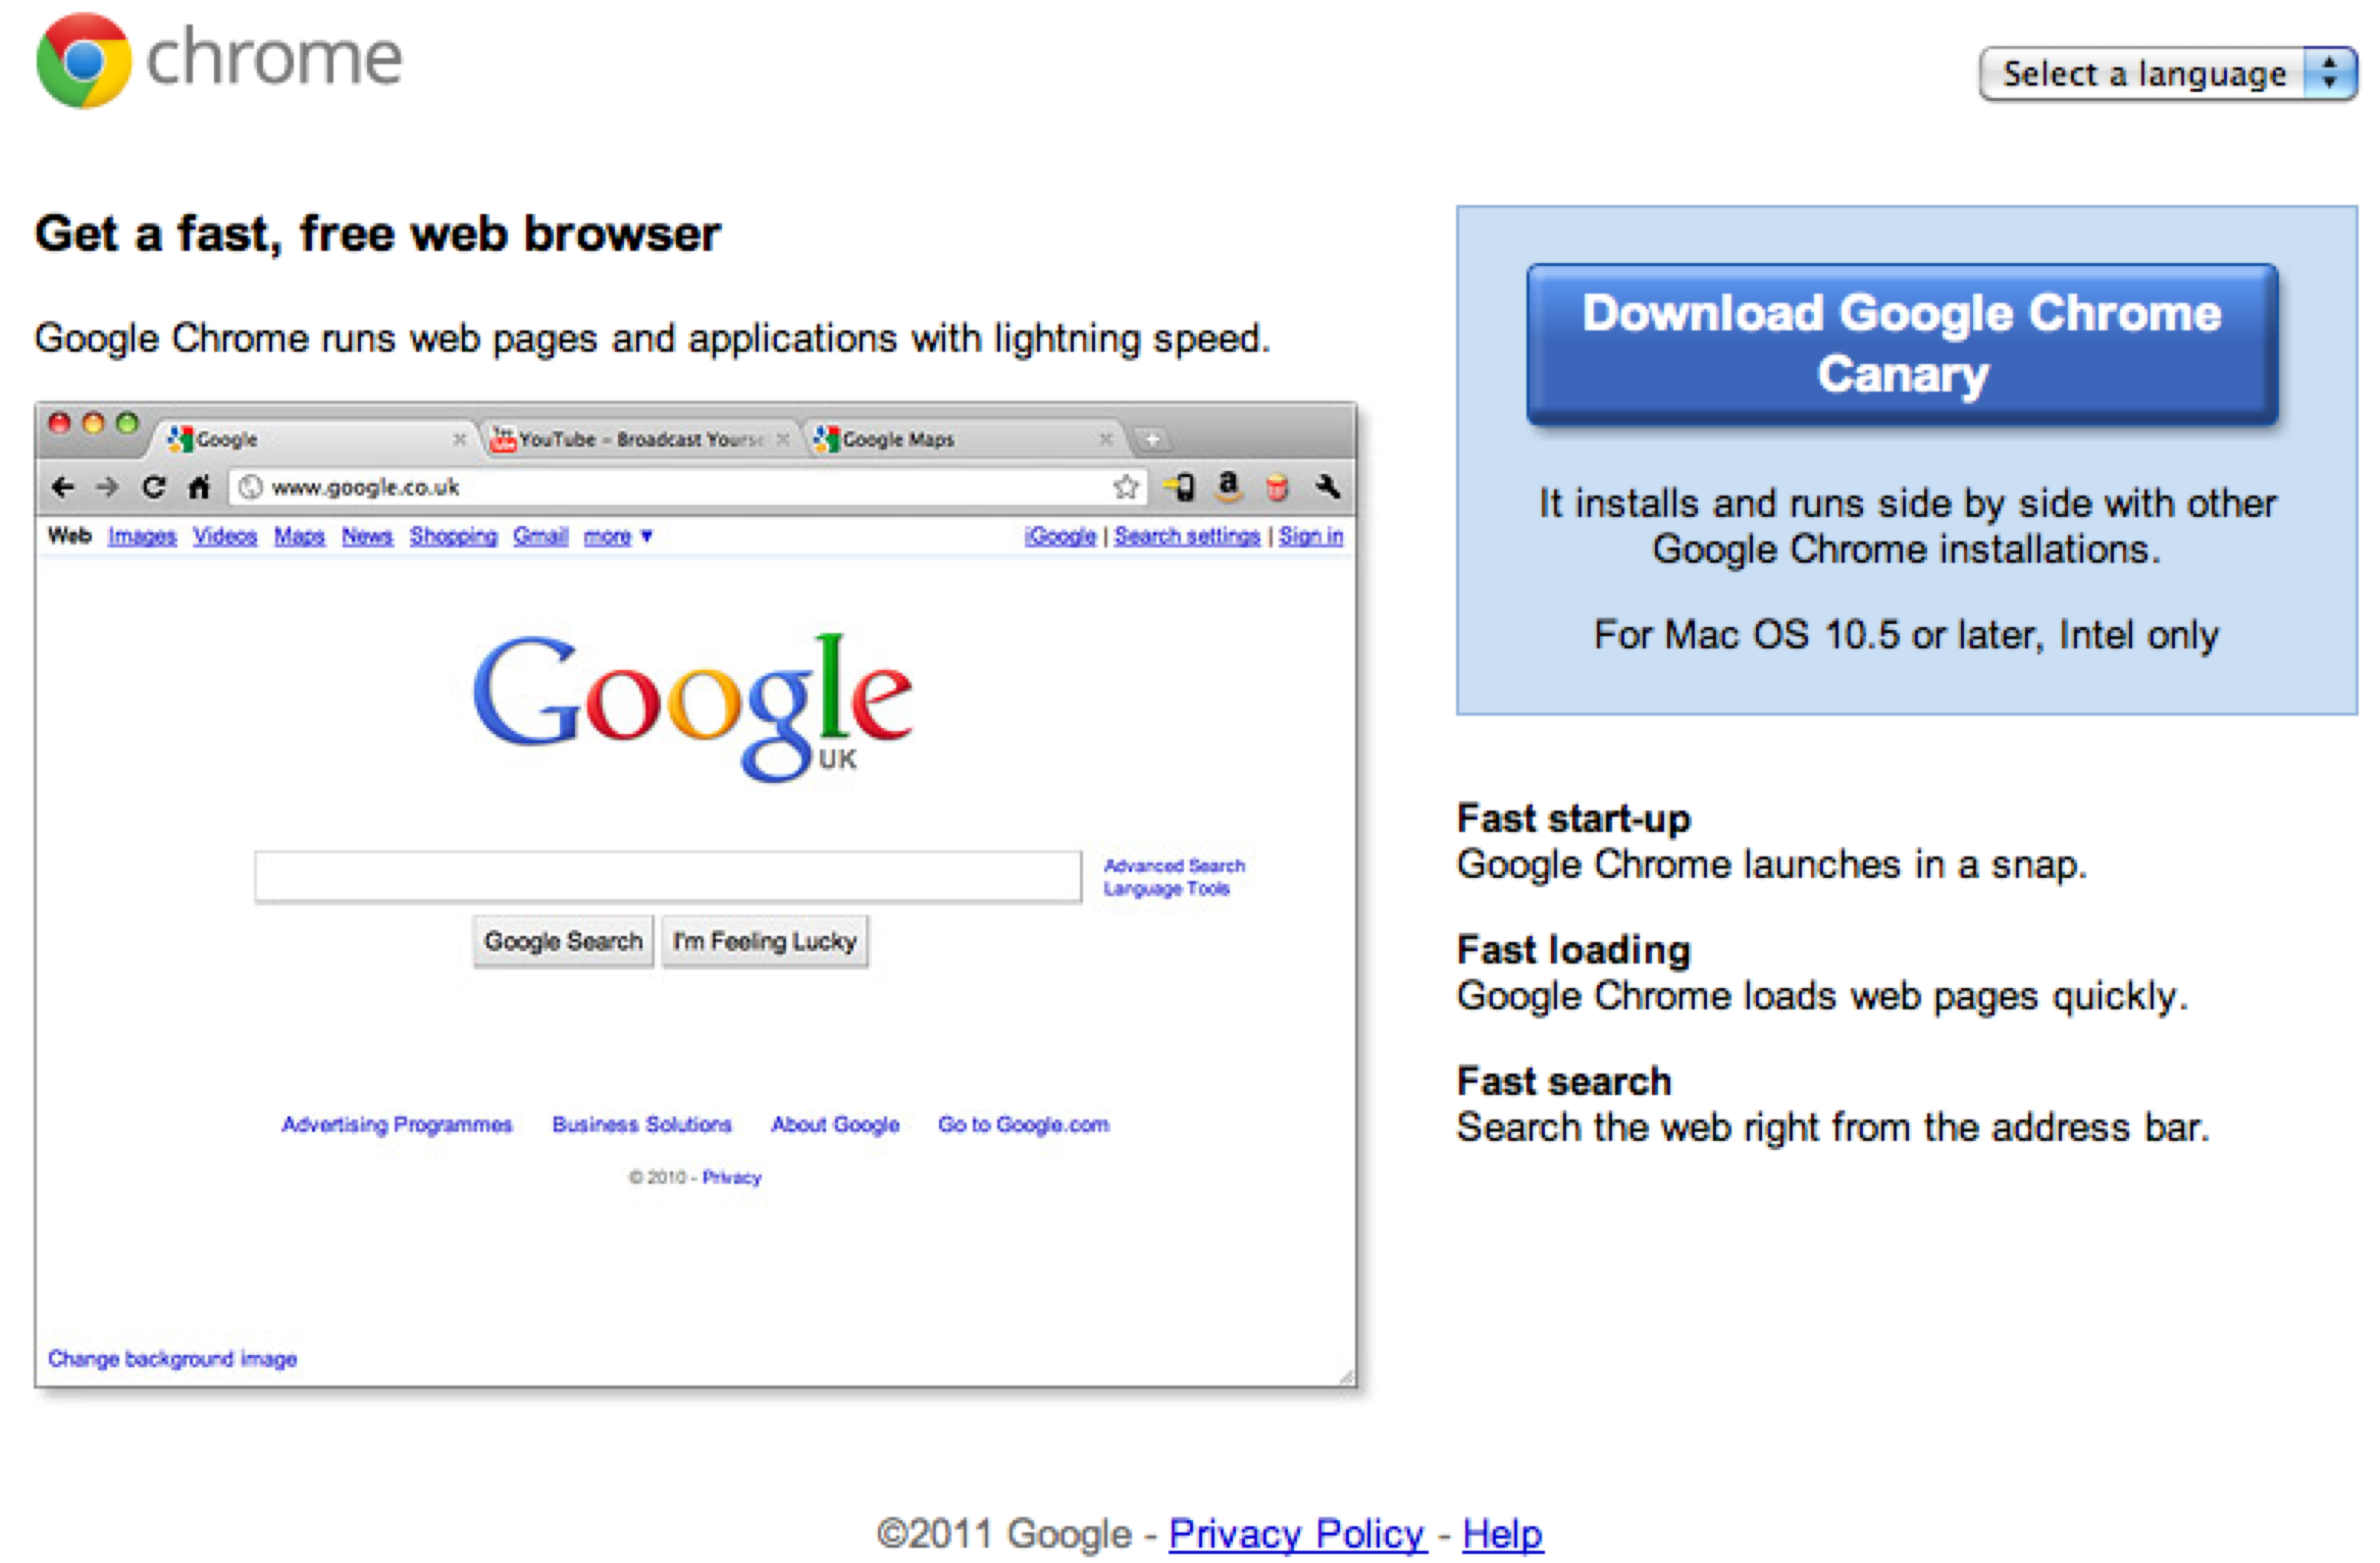 Google latest incarnation for the Mac – Chrome Canary. It is now